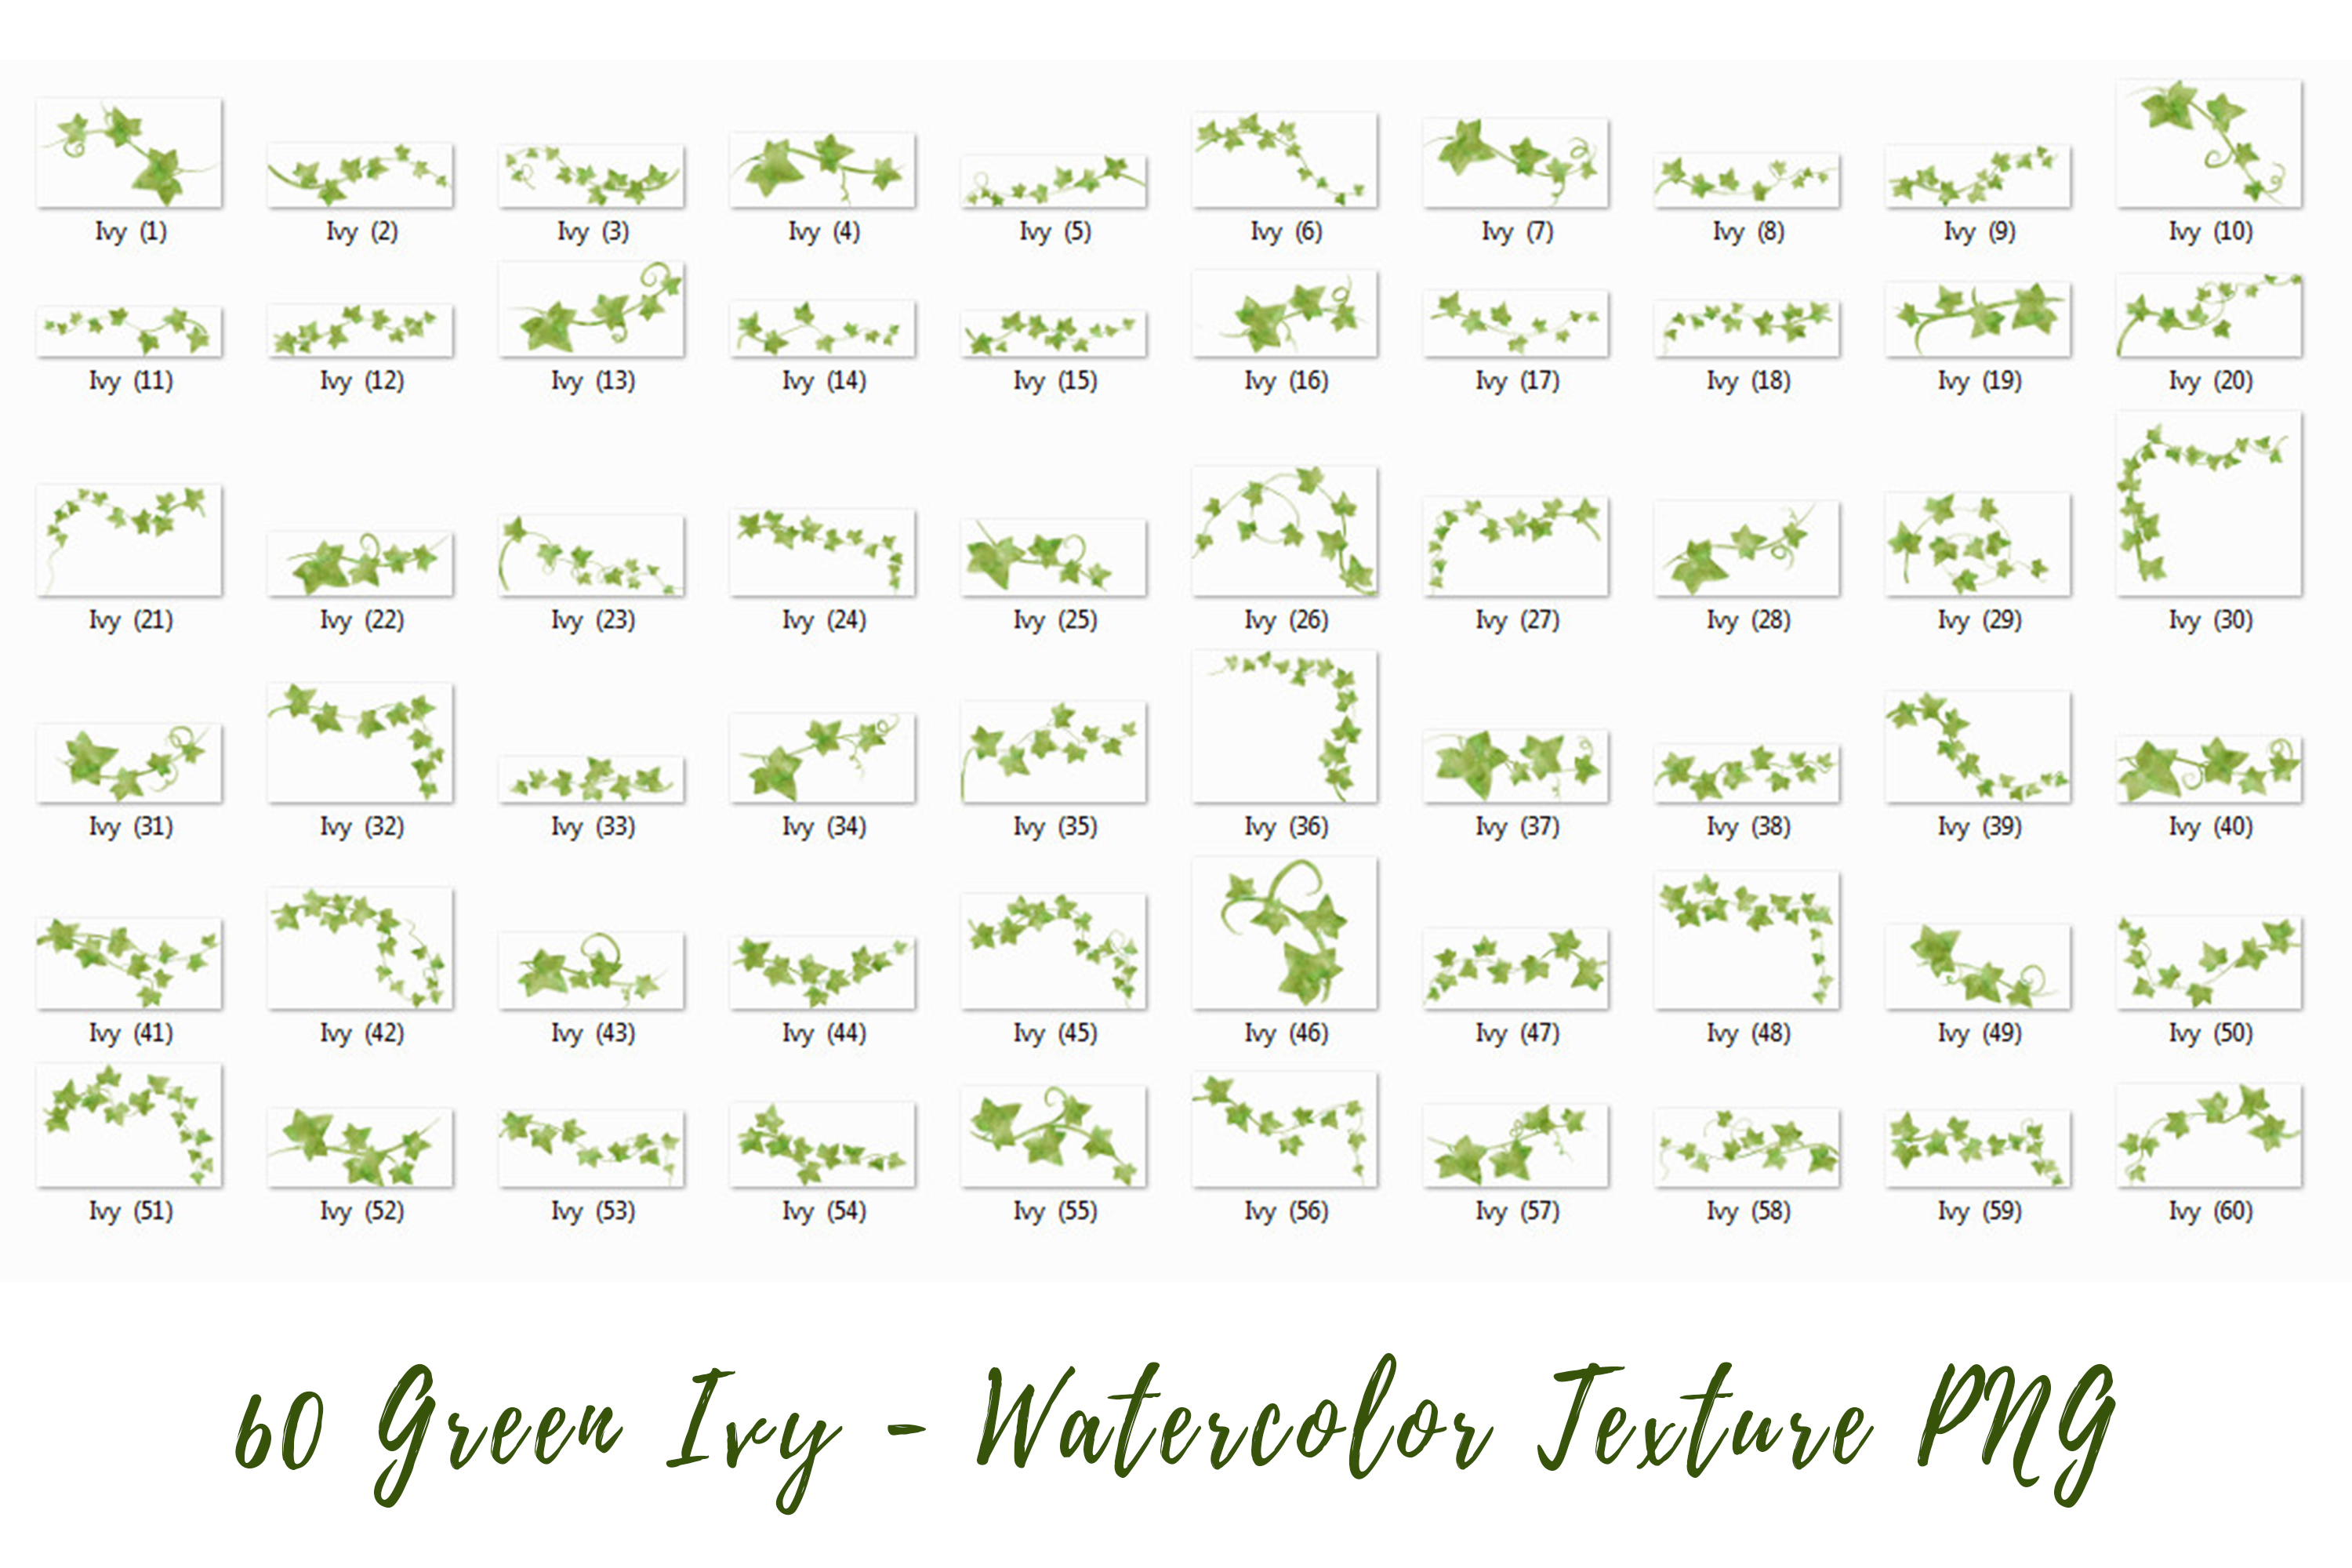 60 Green Ivy - Watercolor Texture|PNG example image 6